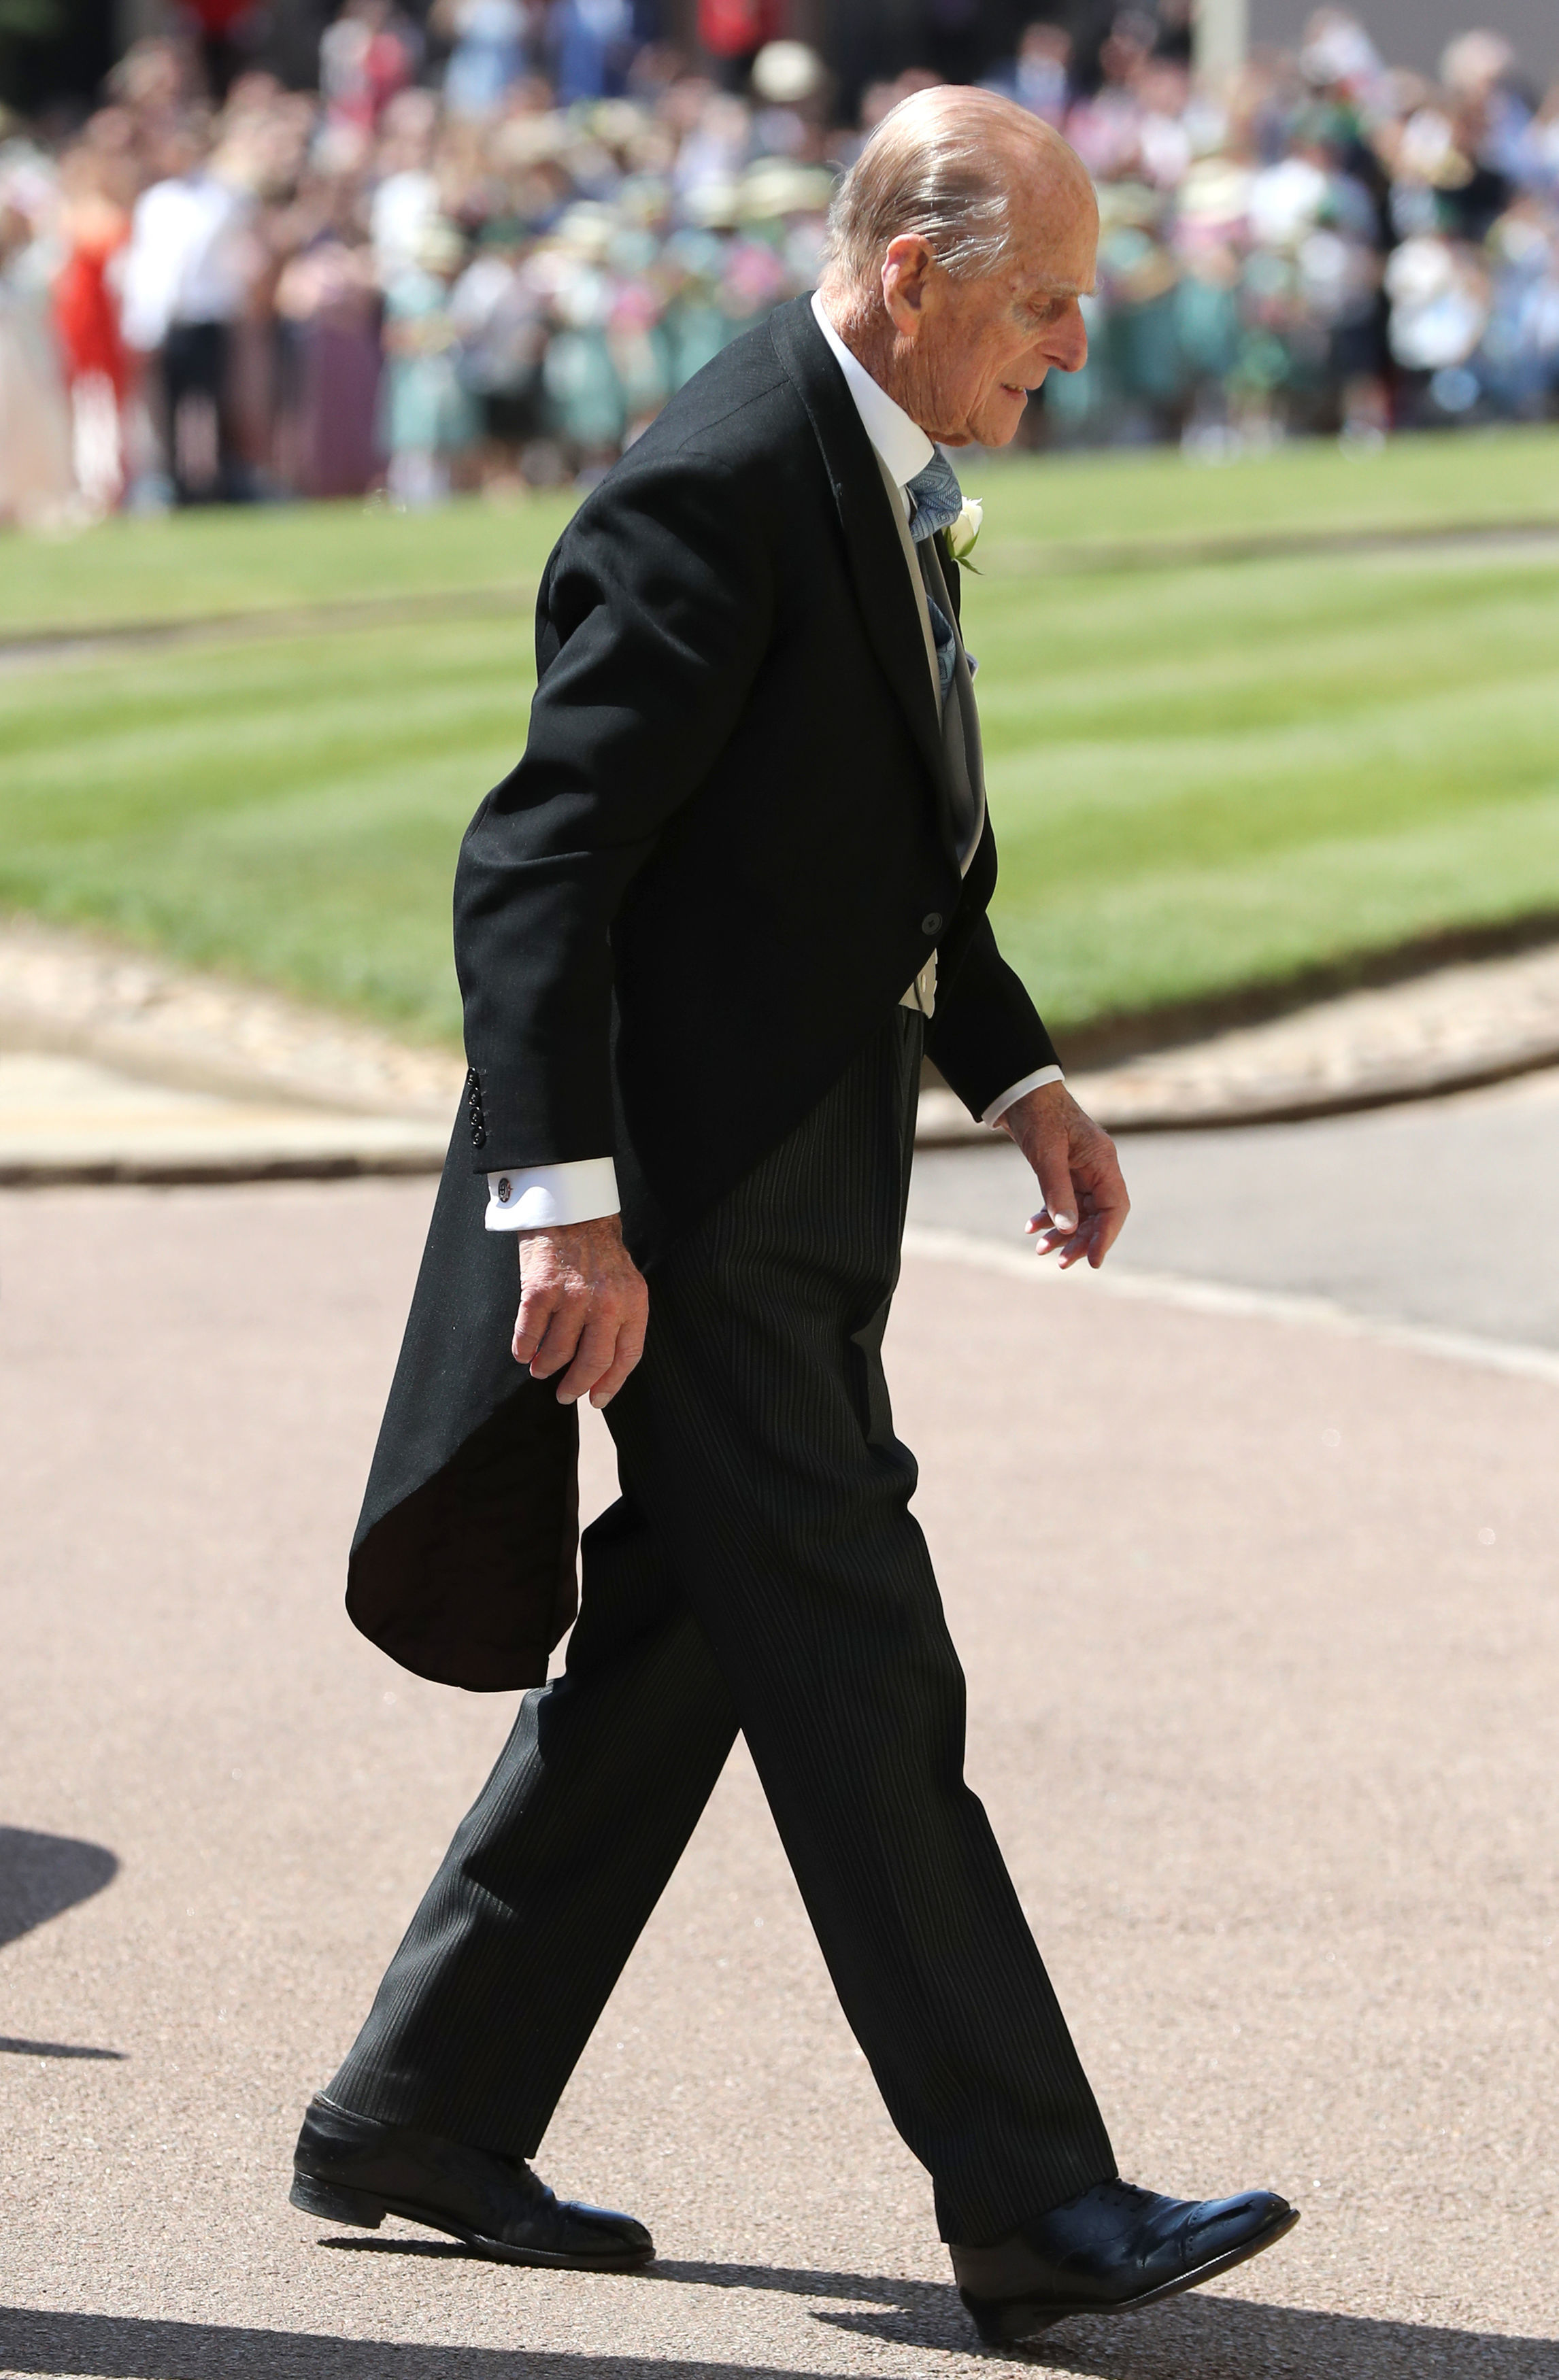 Prince Philip Walks Getty Images